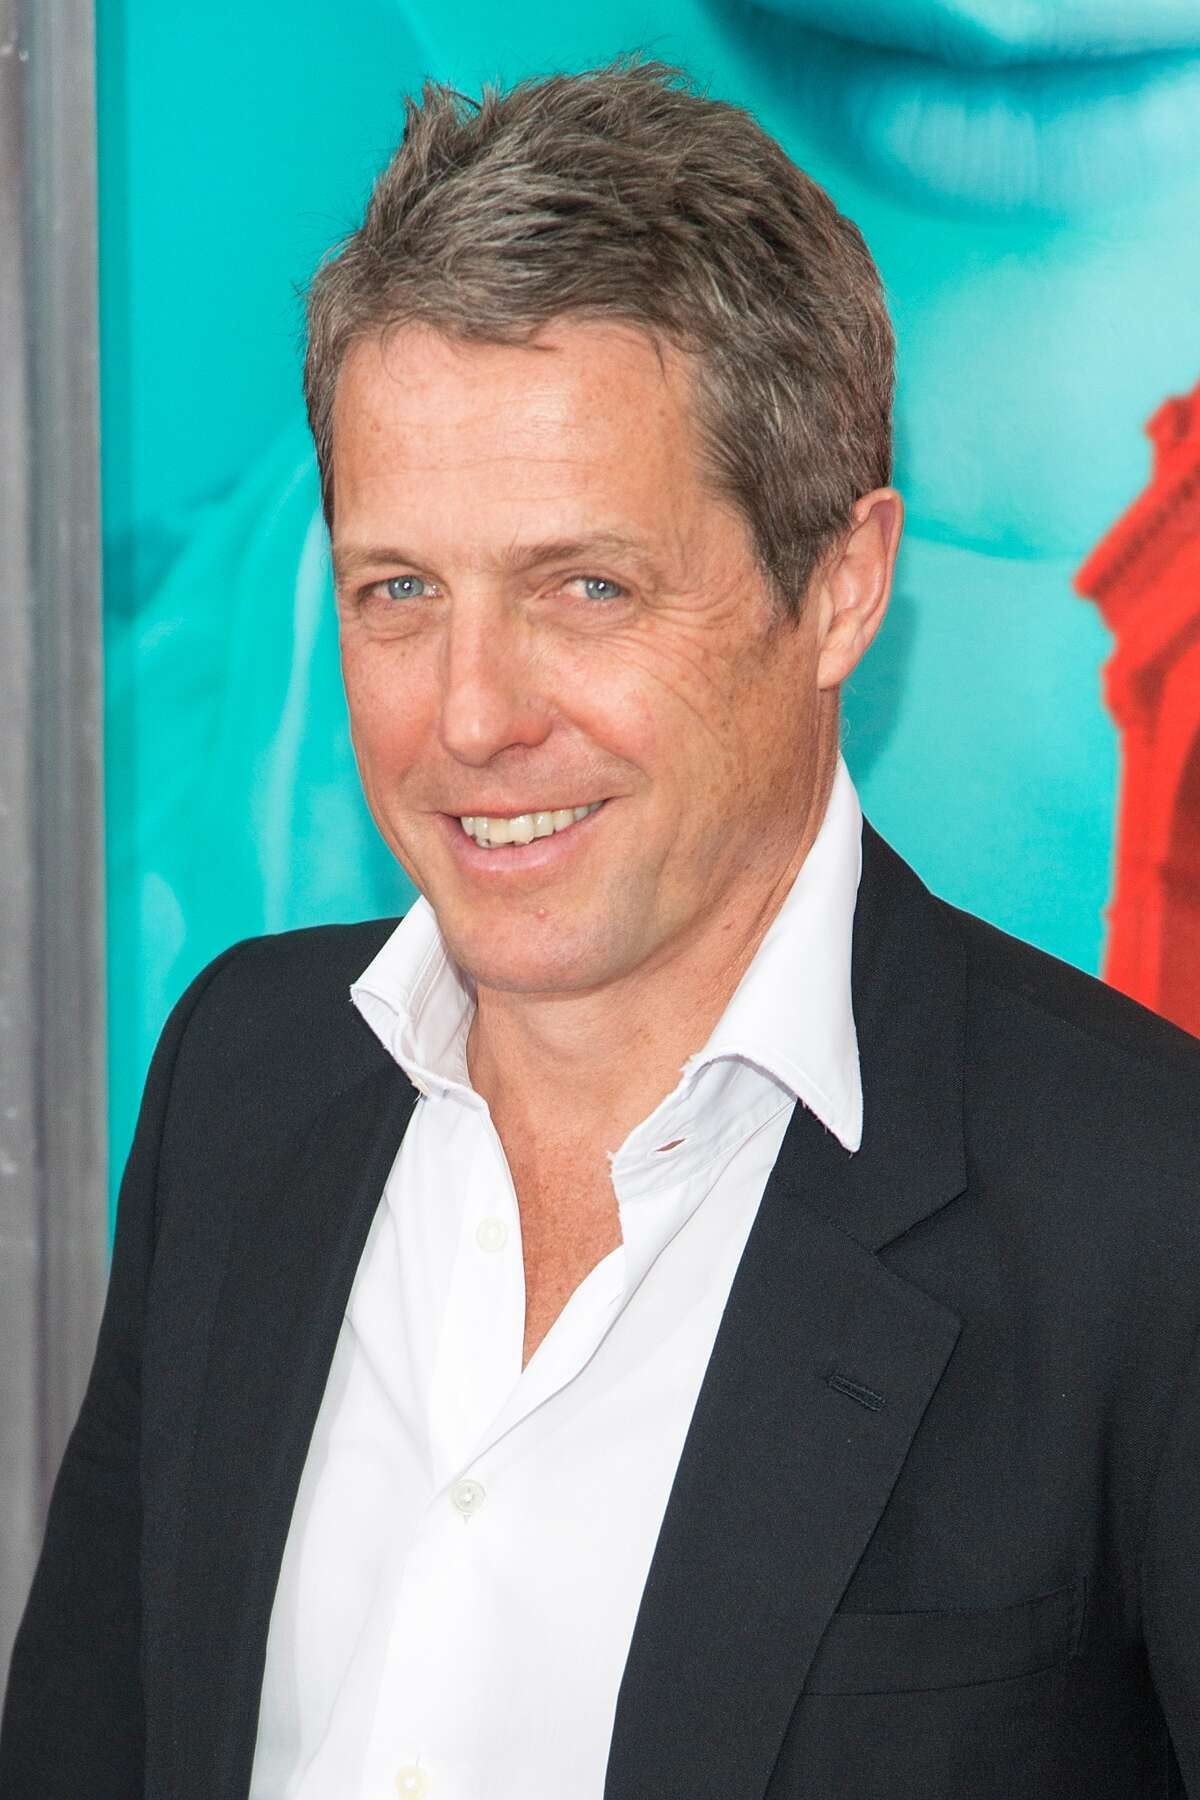 Hugh Grant, pictured in 2015, played the Prime Minister who also loves dancing and lip syncing around 10 Downing Street.